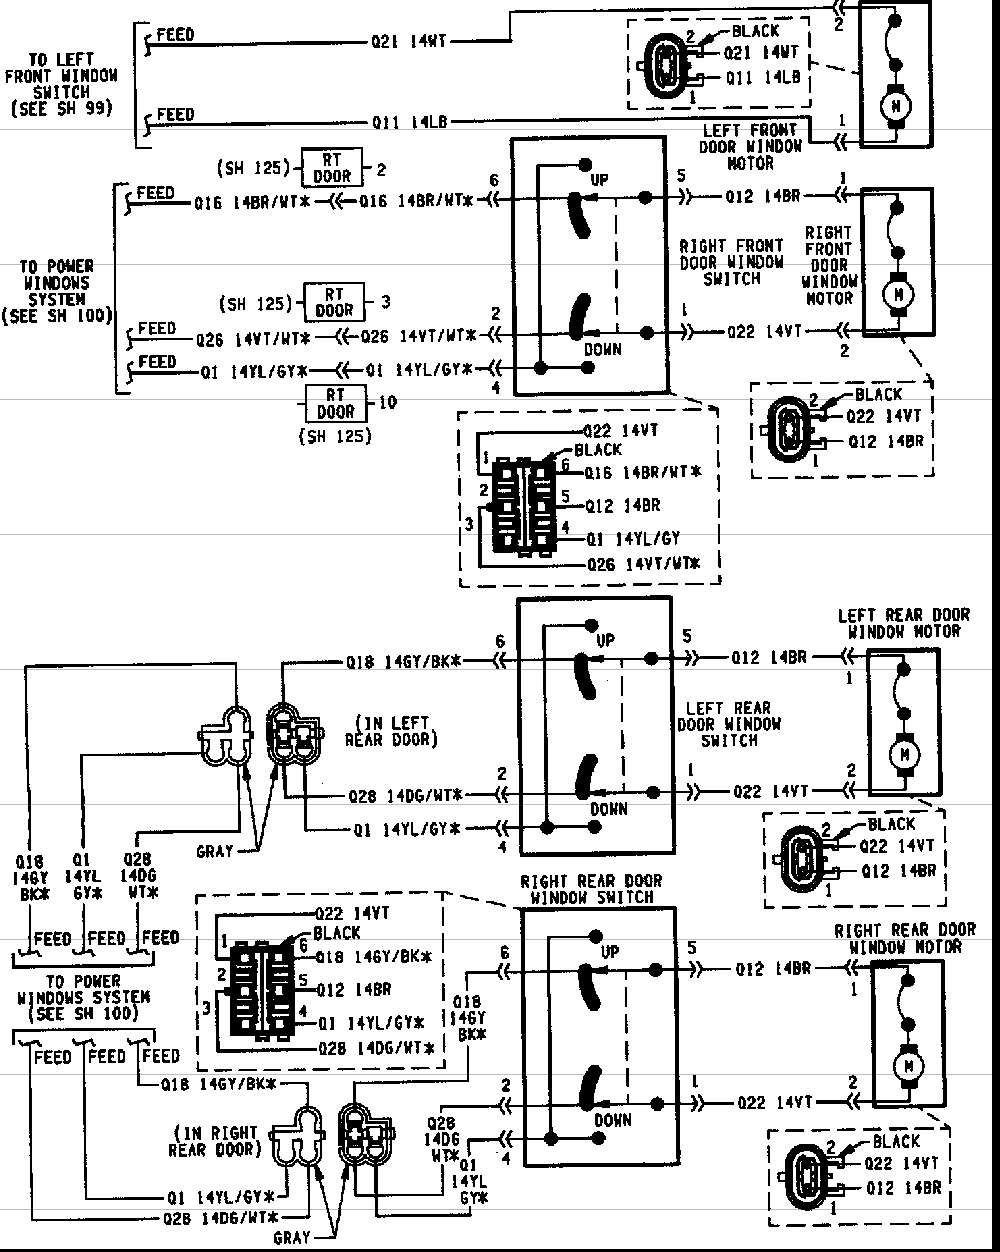 with jeep grand cherokee radio wiring diagram on 94 chevy horn horn wiring schematic online wiring diagram data rh 1 ni system de